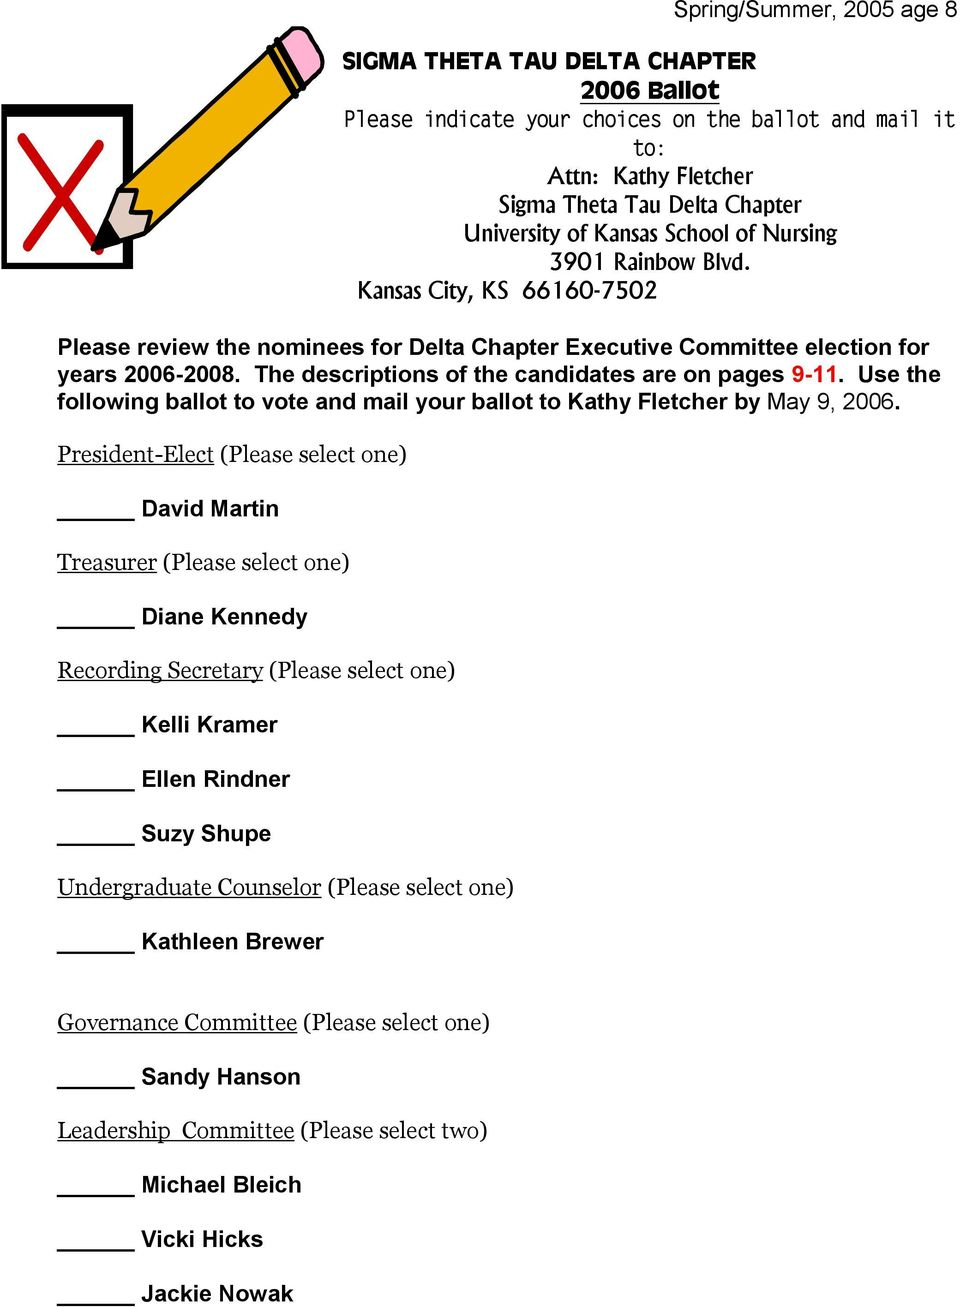 Use the following ballot to vote and mail your ballot to Kathy Fletcher by May 9, 2006.